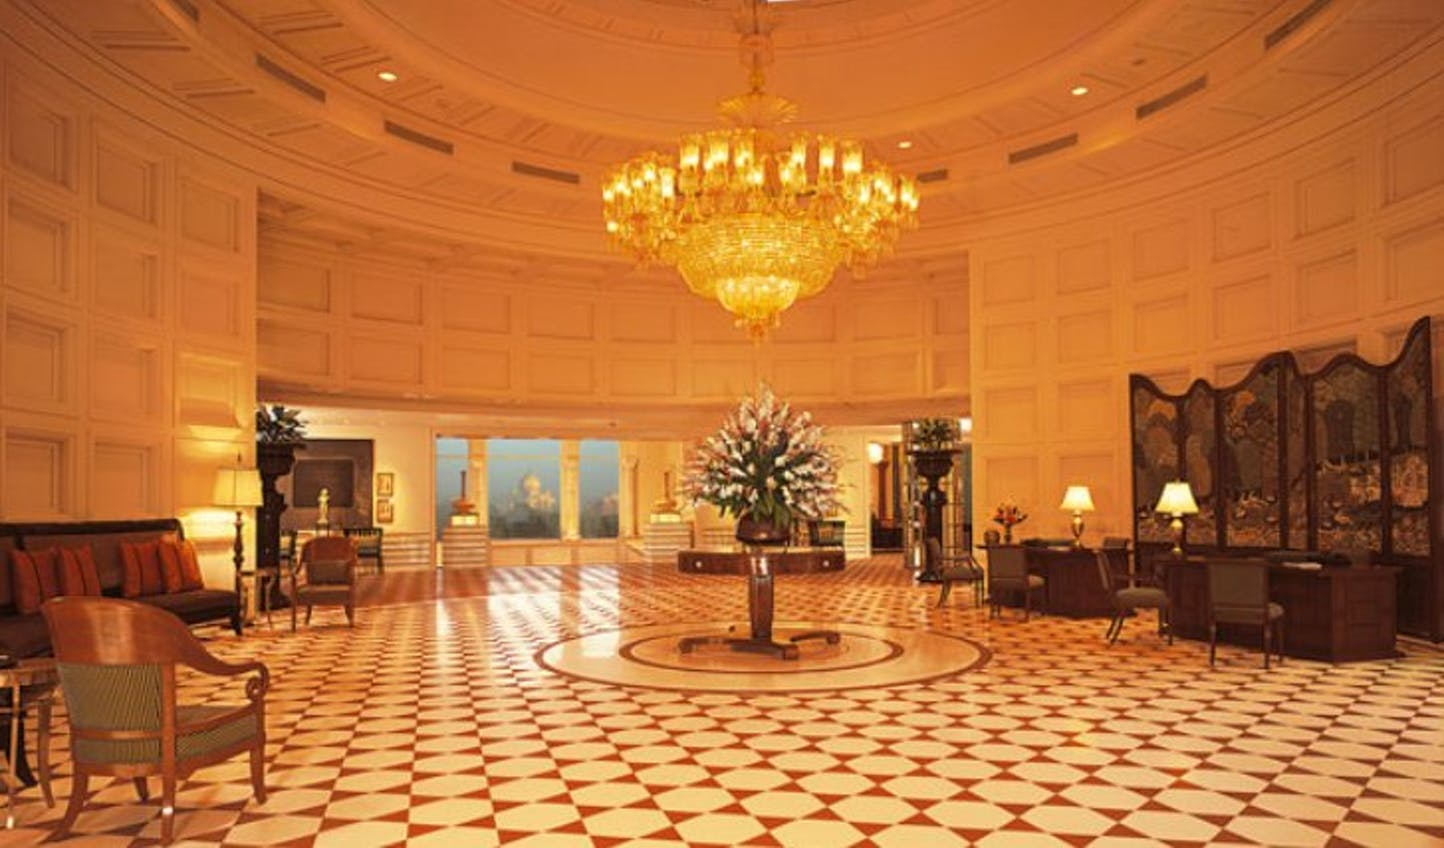 The domed lobby at Amarvillas, Agra, India